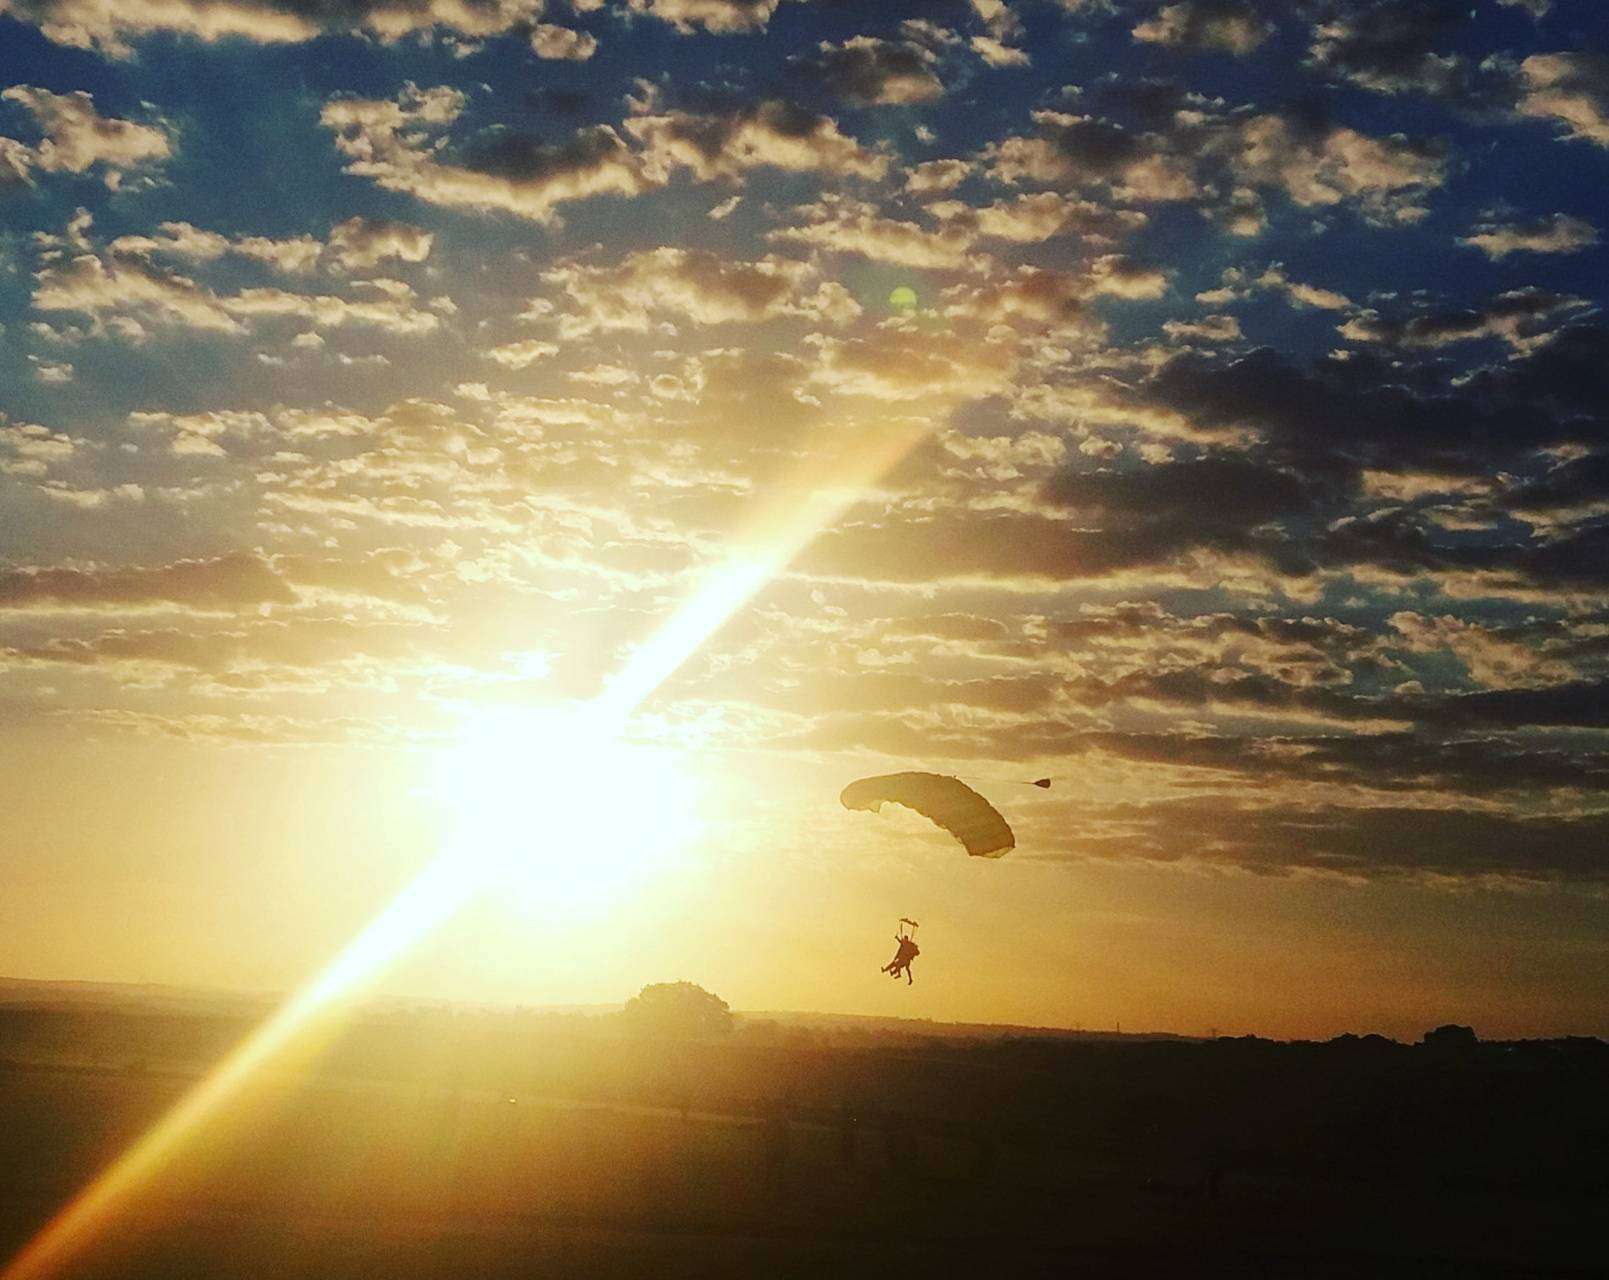 Sunset skydive